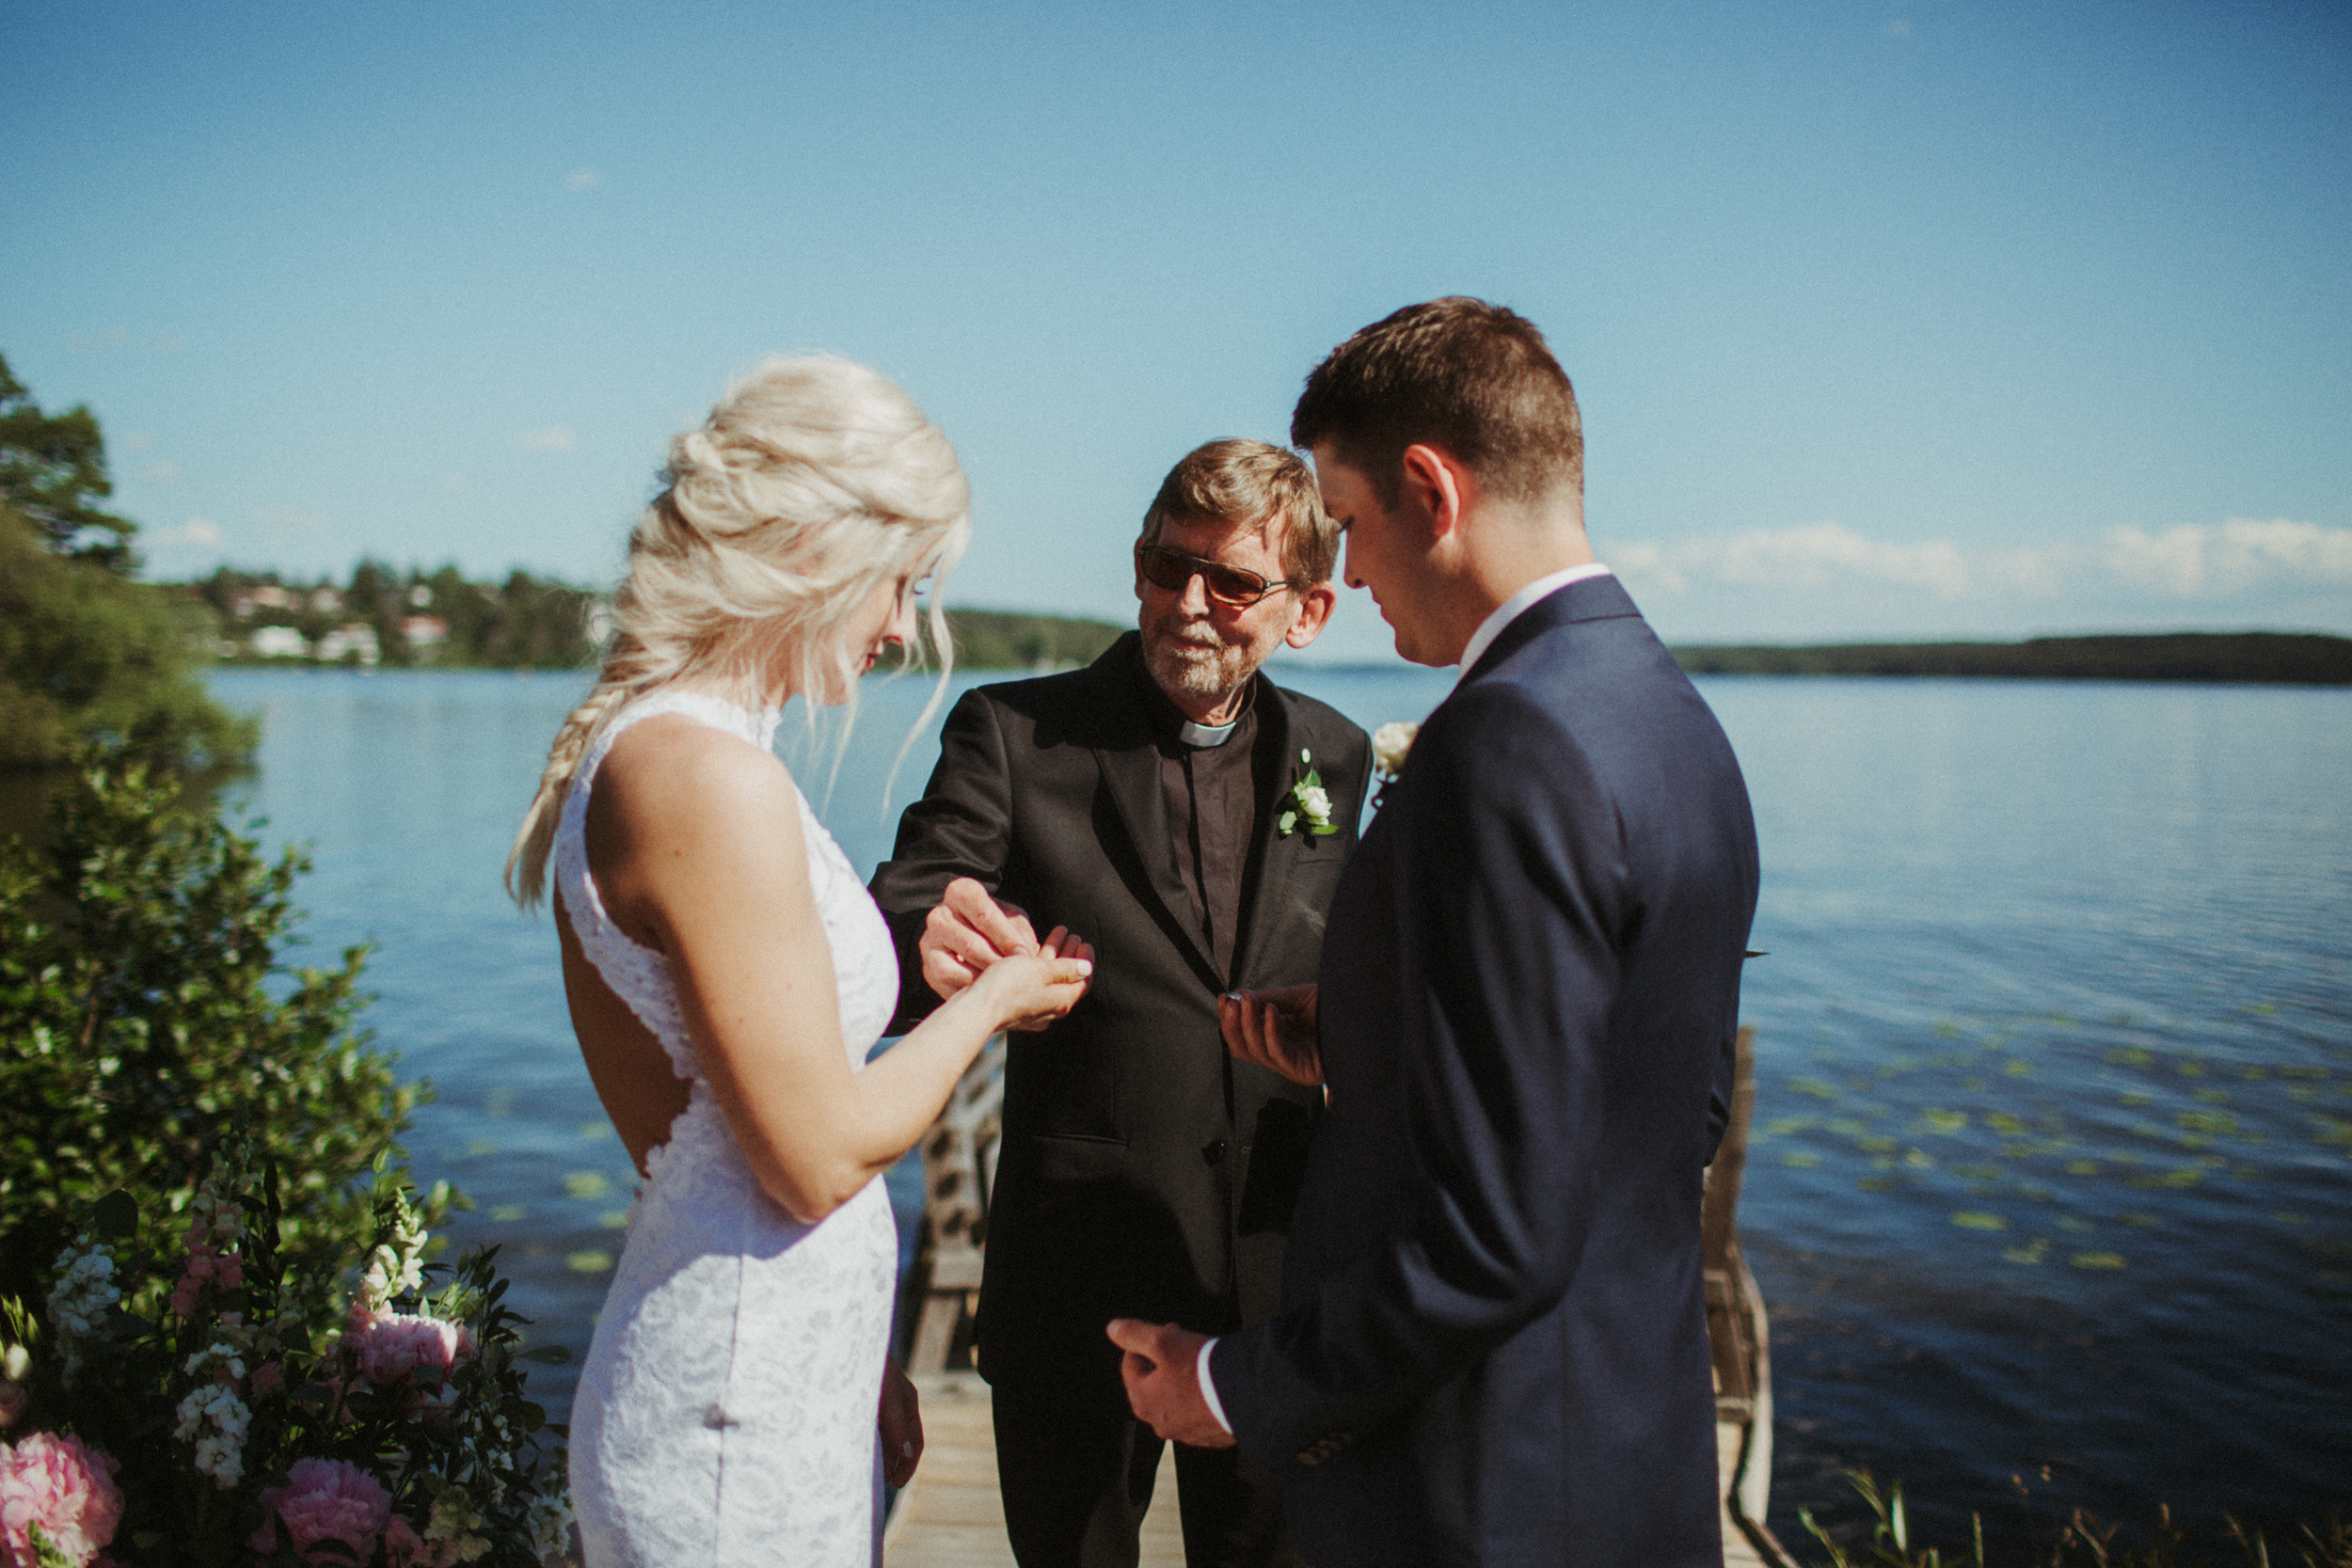 sigtuna-sweden-wedding_m_e-74.jpg